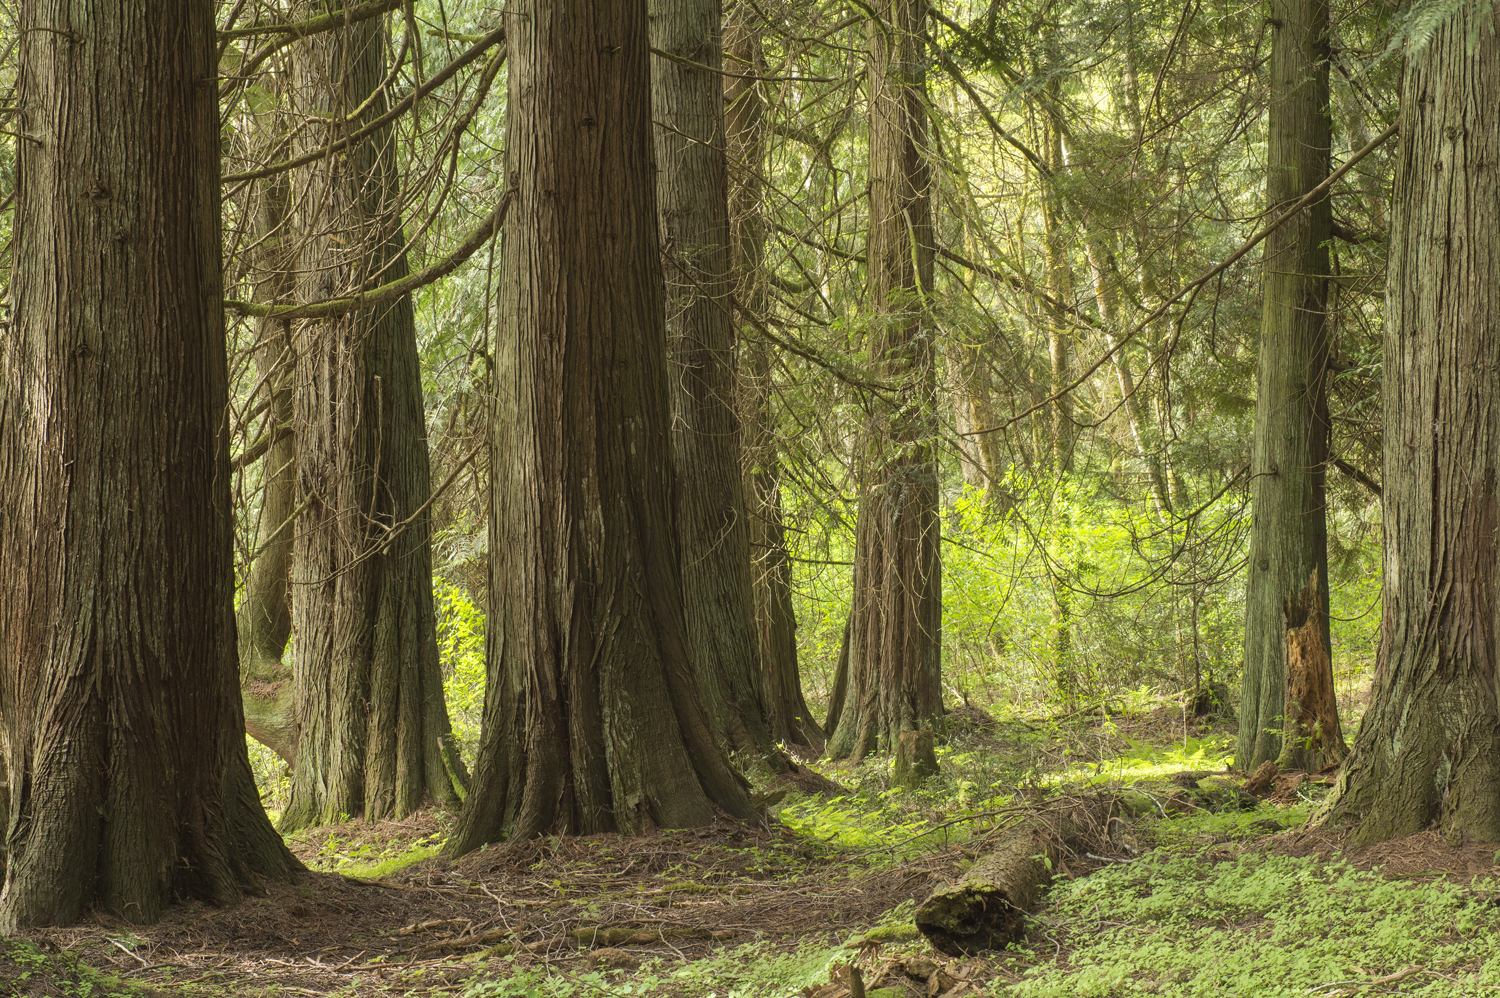 Our forest showing off some over one-hundred year old trees.